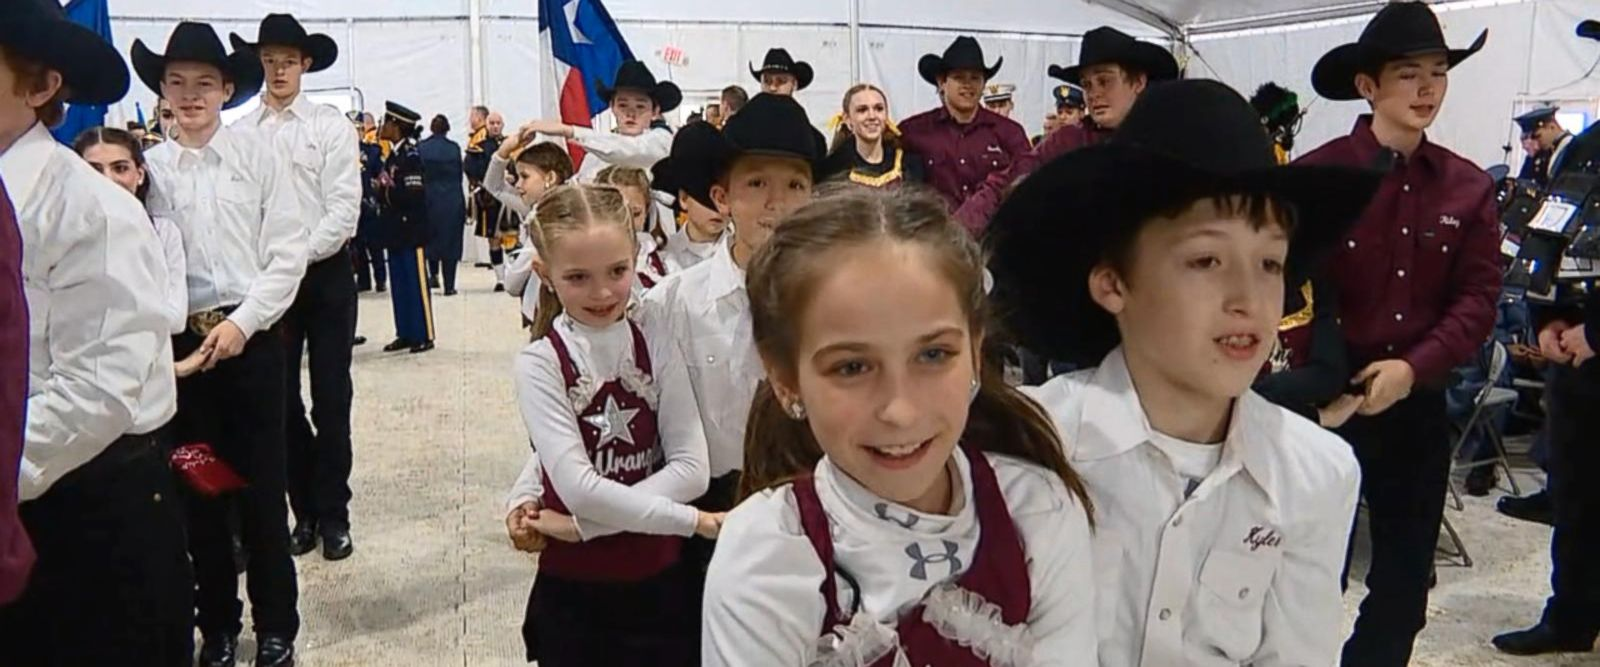 VIDEO: Lil' Wranglers Head to DC to Perform in Inaugural Parade